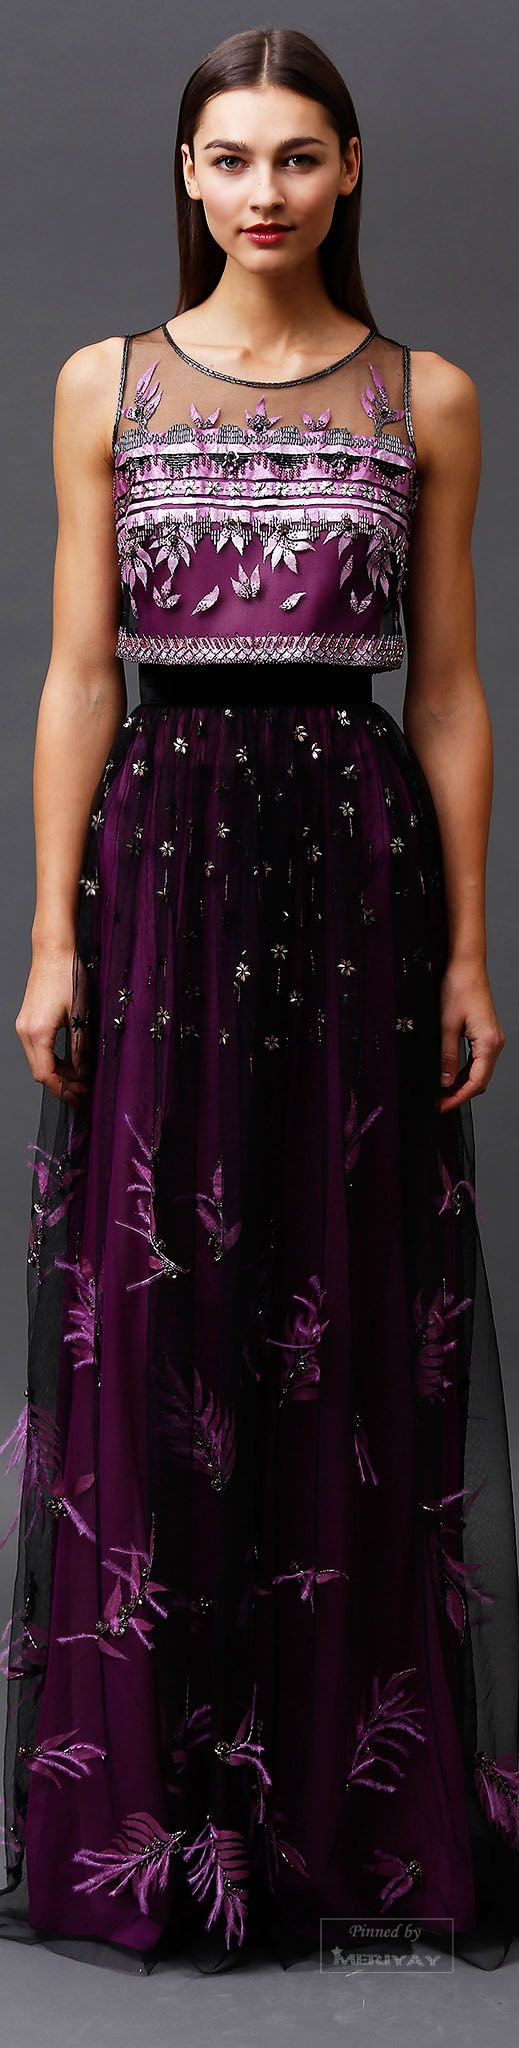 Badgley Mischka.Pre-Fall 2015. Sheer and beaded midriff top with long purple skirt